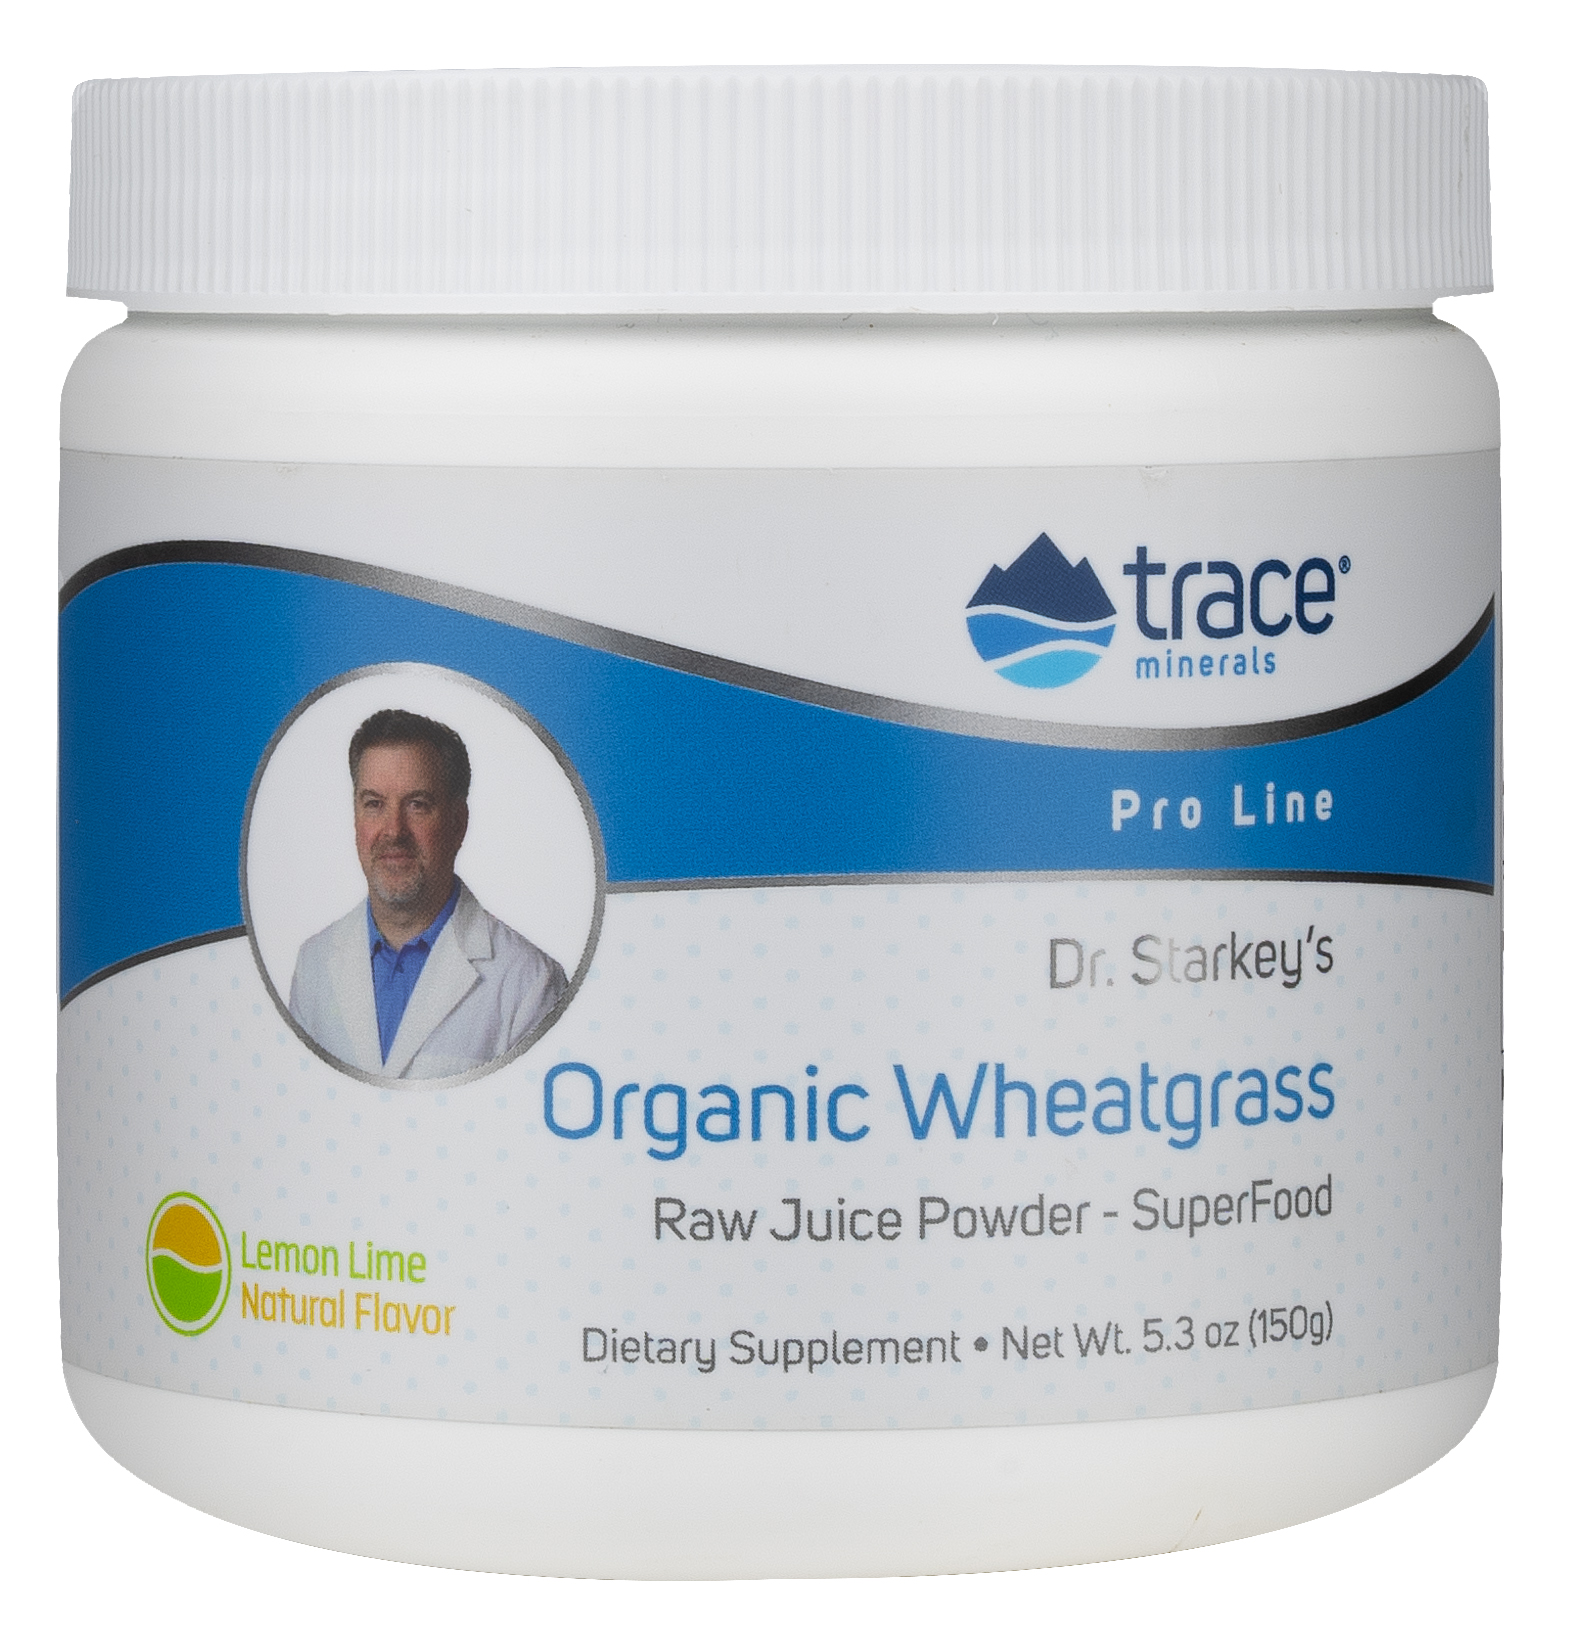 Dr. Starkey Organic Wheatgrass Lemon Lime Flavor